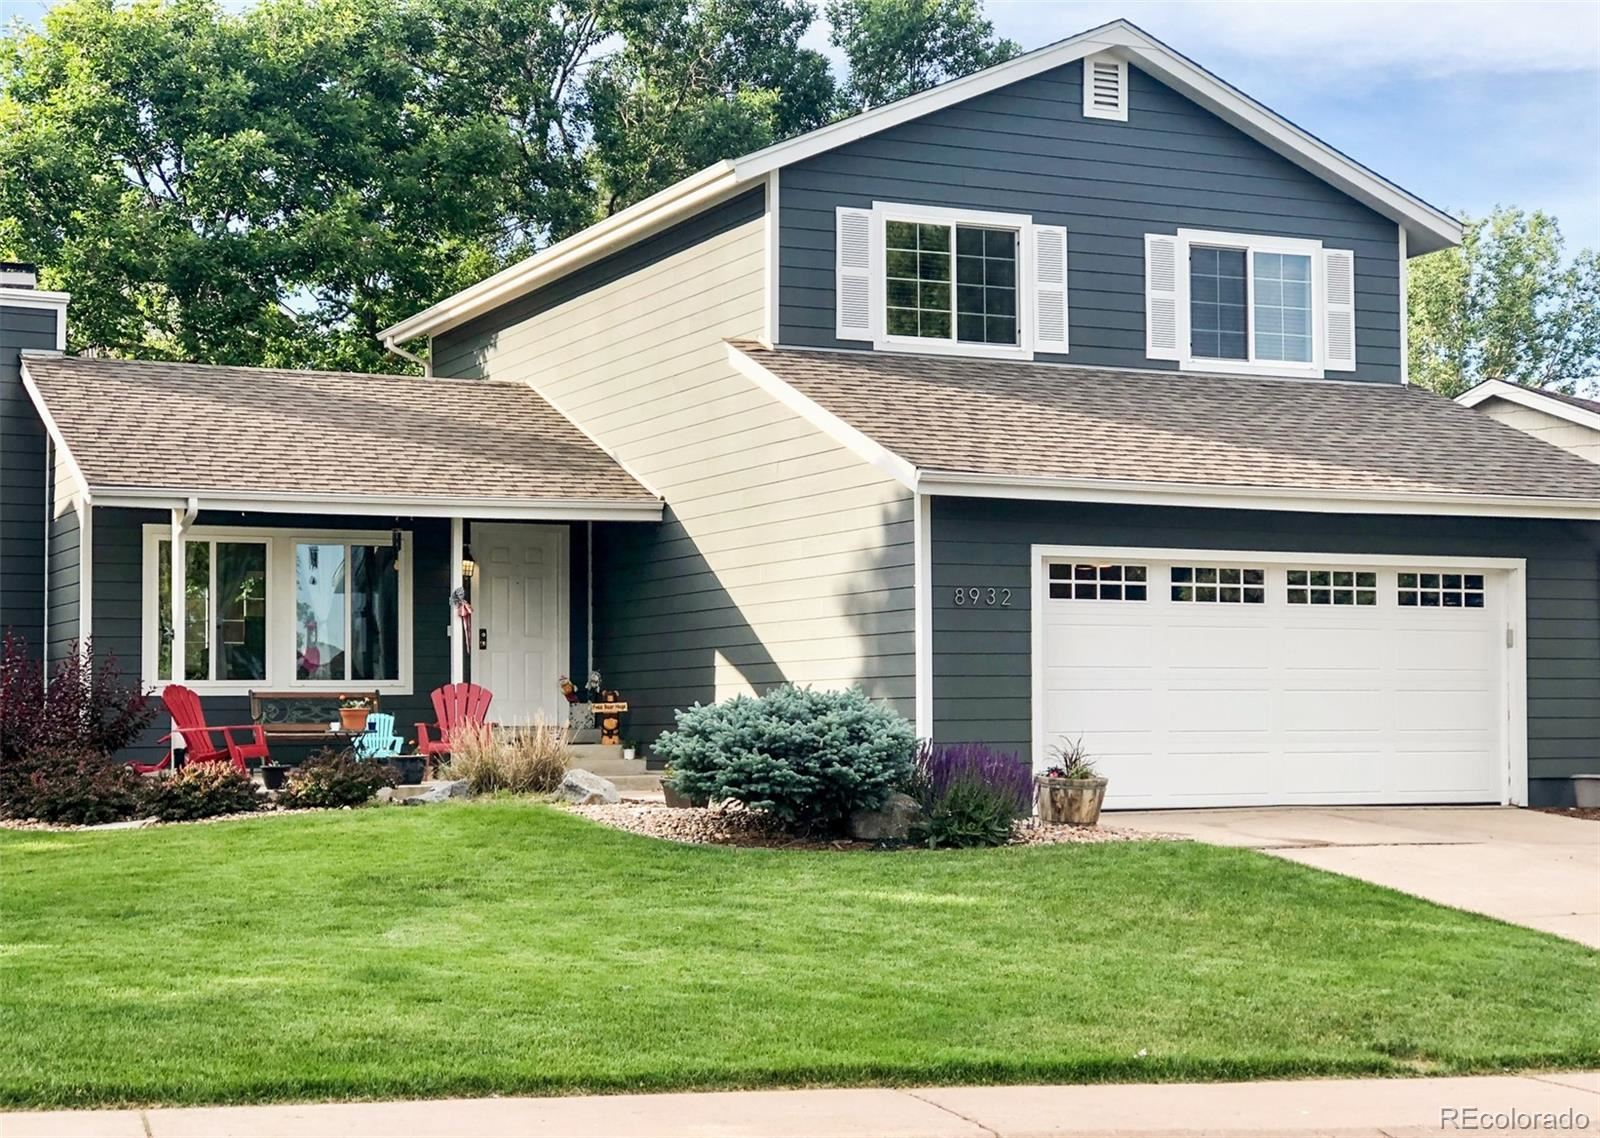 8932 S Coyote Street, Highlands Ranch, CO 80126 - #: 8857948